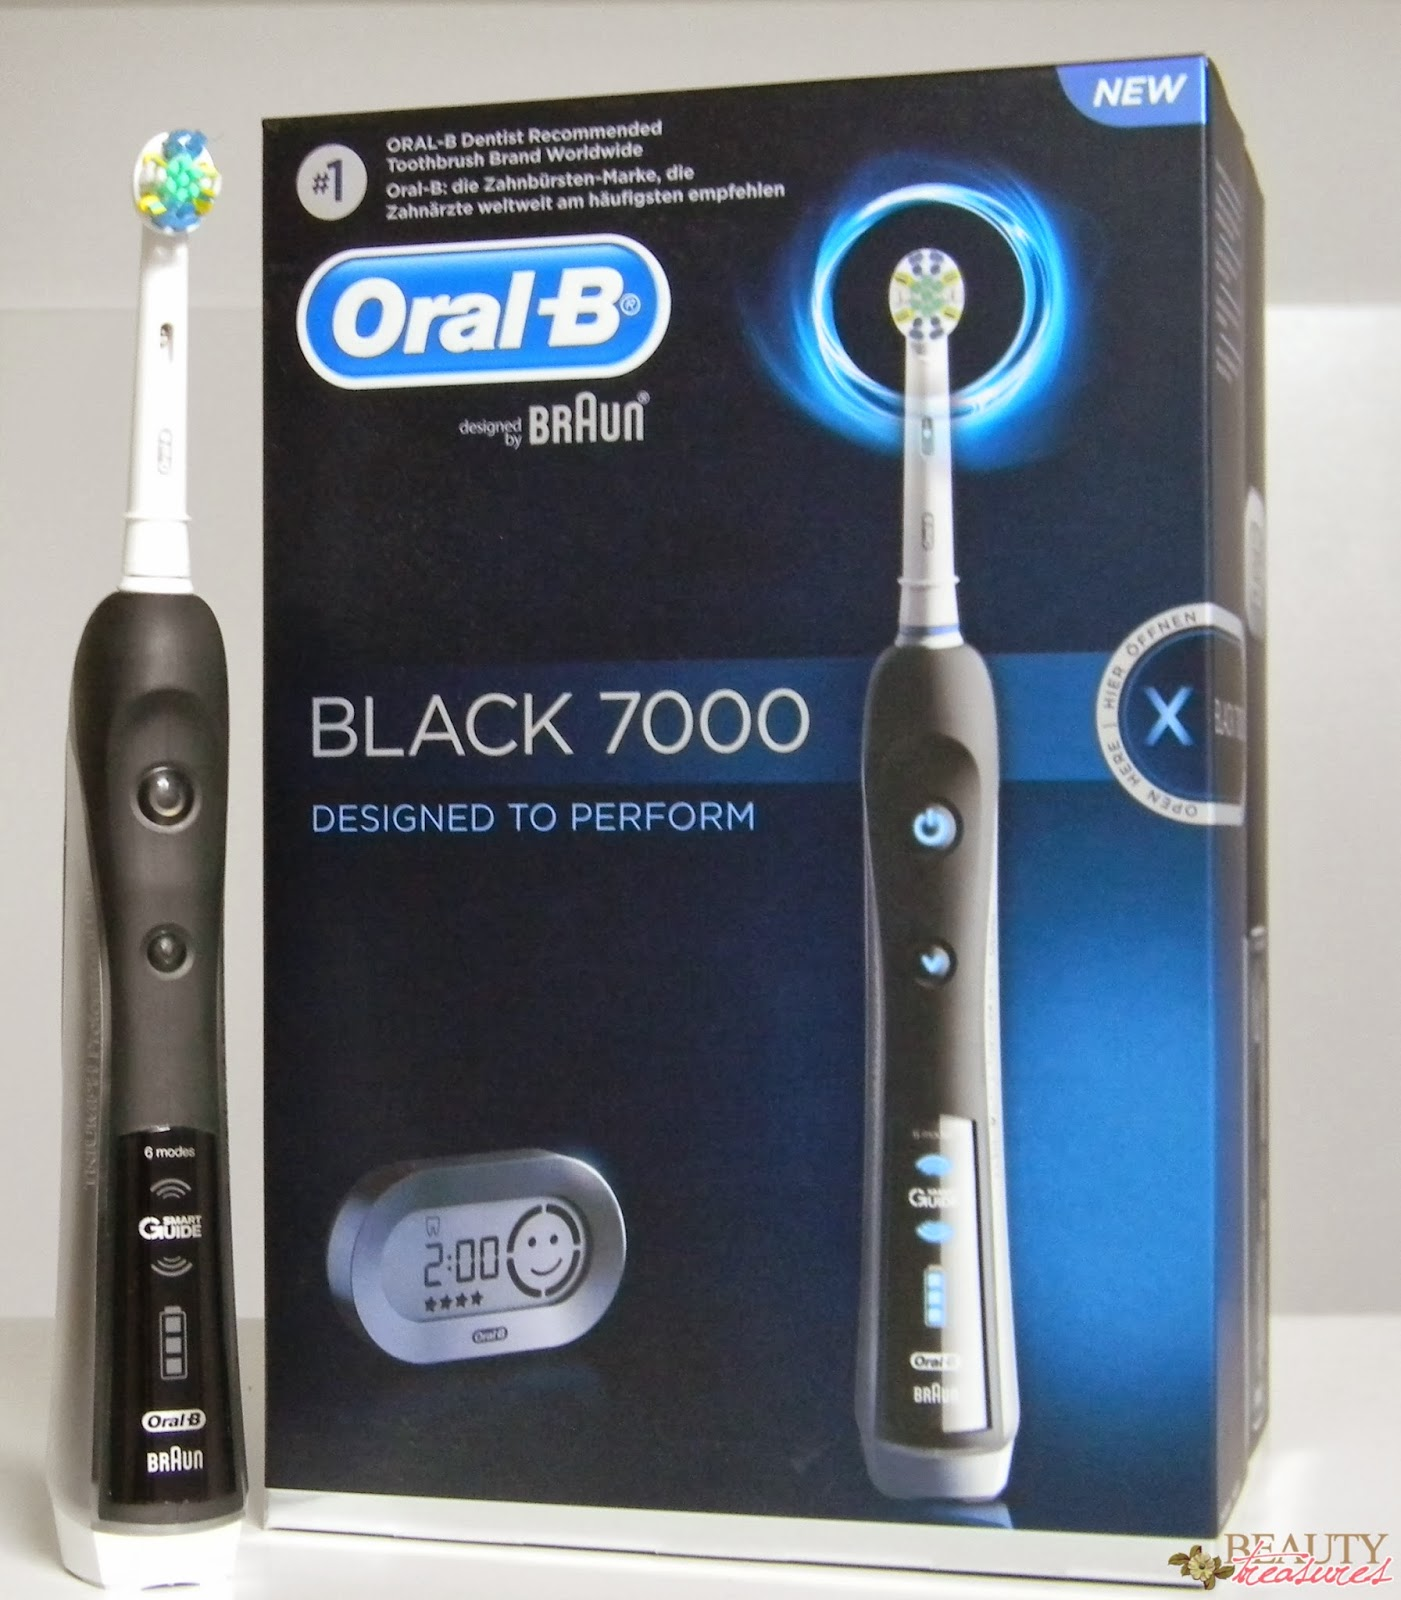 Oral-B specializes in removing plaque stored near the gums, Oral-B stresses teeth whitening while the Oral-B gives the user tooth by tooth clean. Considering their costs, the Oral-B is definitely the most feature-rich brush handle of all the three, providing more options for a thorough mouth clean in comparison to others.